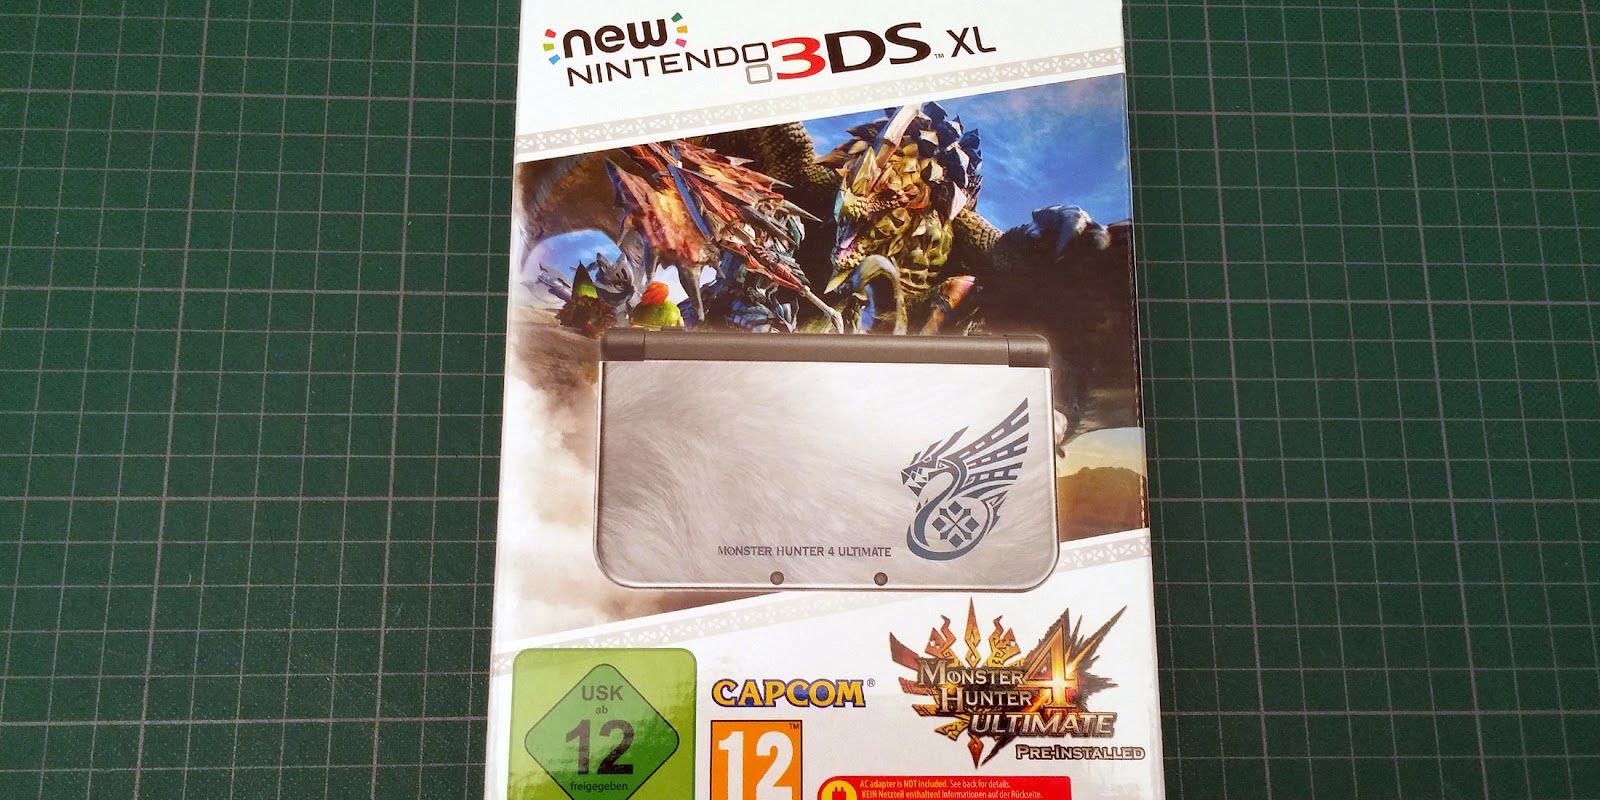 Image de la boite de la New 3DS XL Monster Hunter 4 Ultimate édition